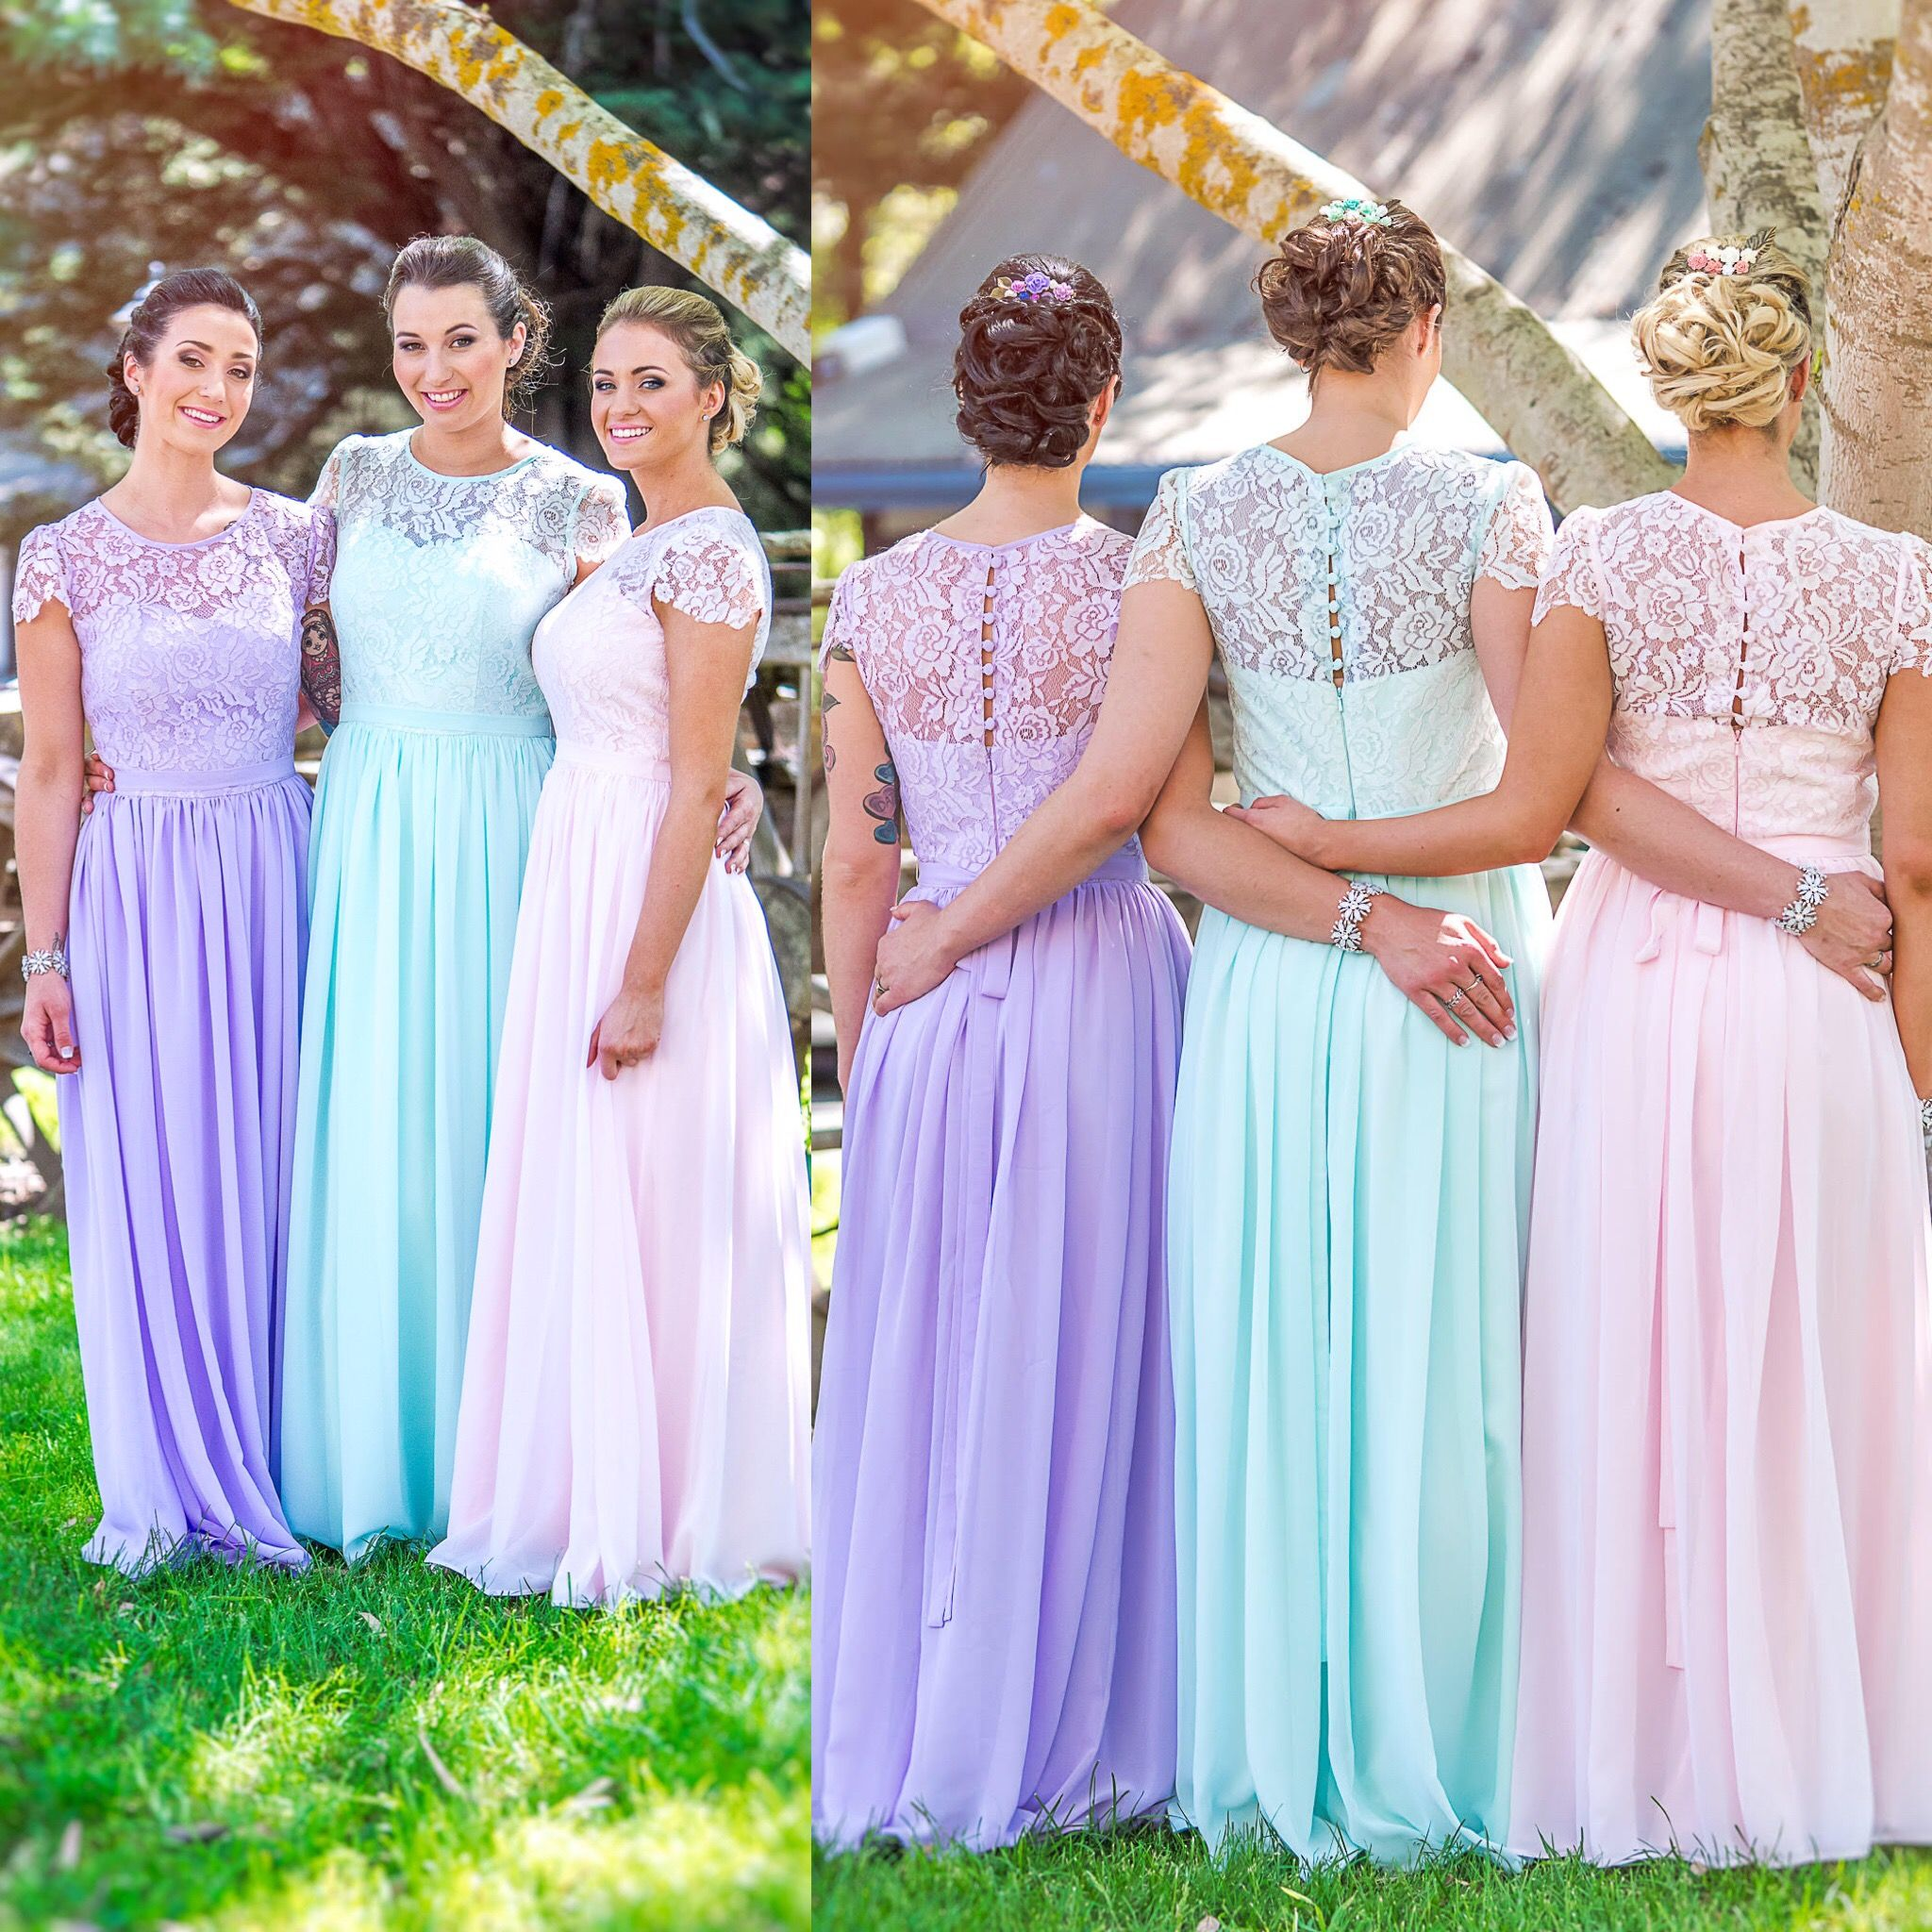 The mix n match bridesmaid dresses laura purchased from fhfh the mix n match bridesmaid dresses laura purchased from fhfh turned out truly gorgeous at ombrellifo Choice Image